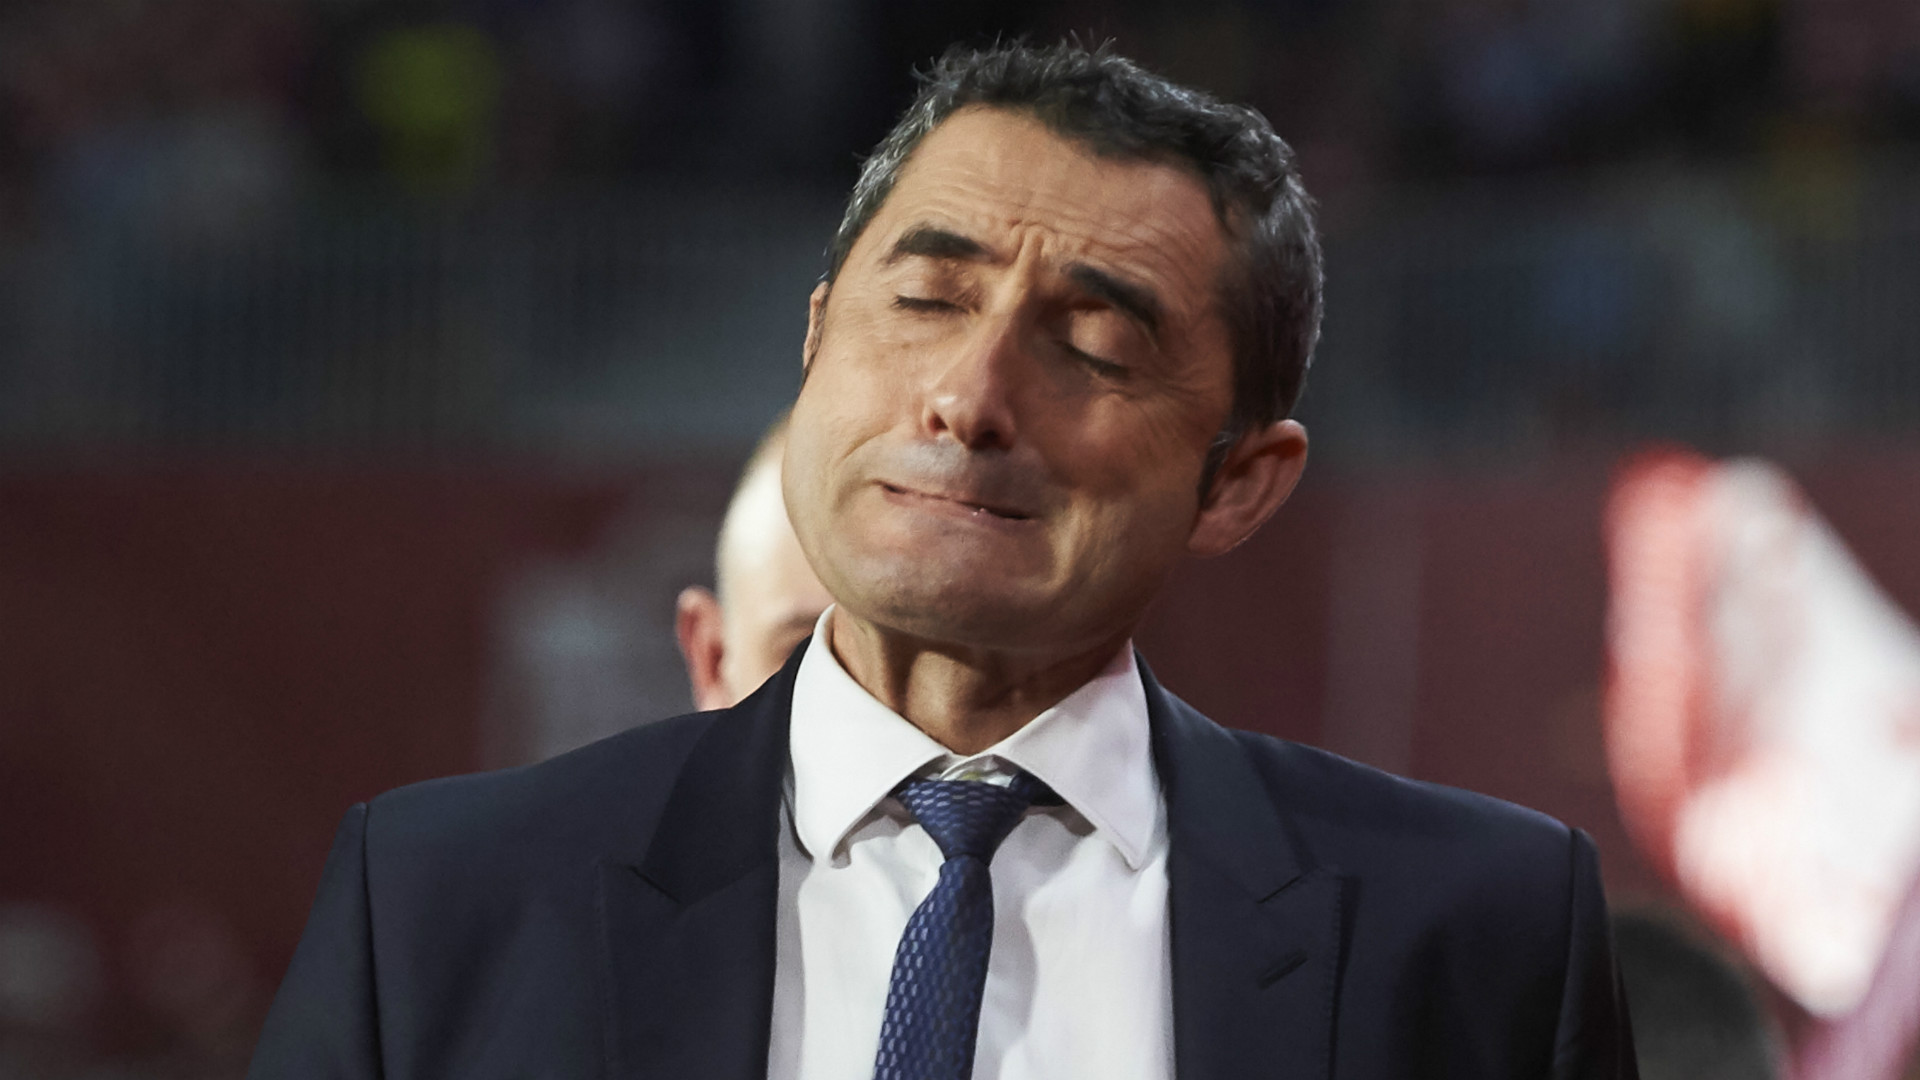 Ernesto Valverde: Barcelona players will solve any issues internally